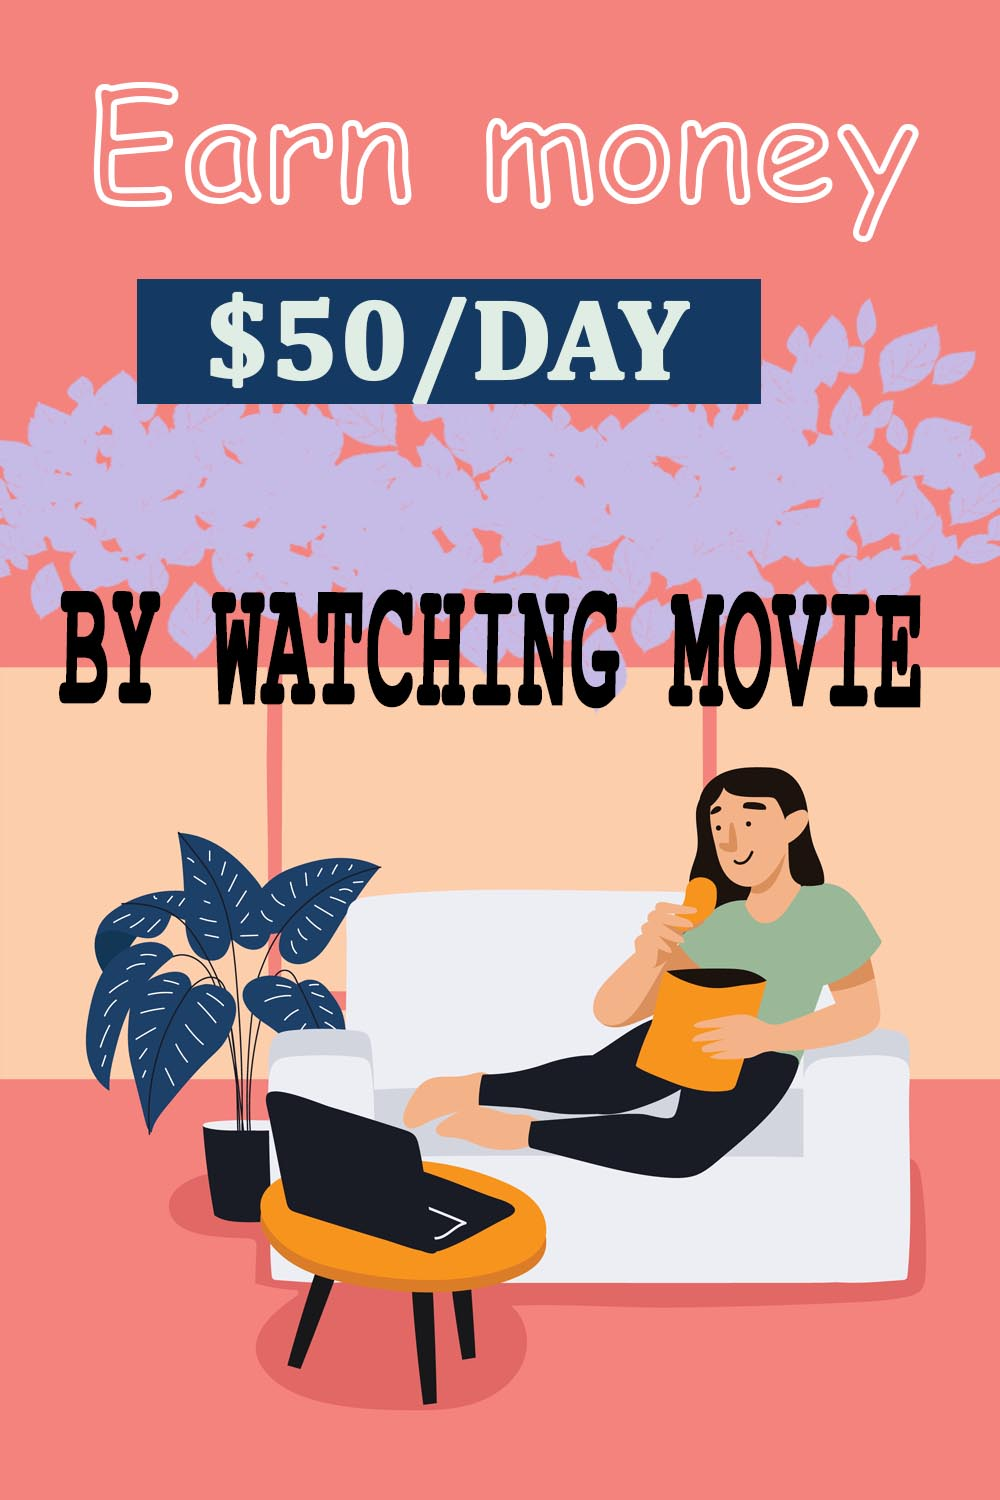 Earn money $50/Day by watching movies